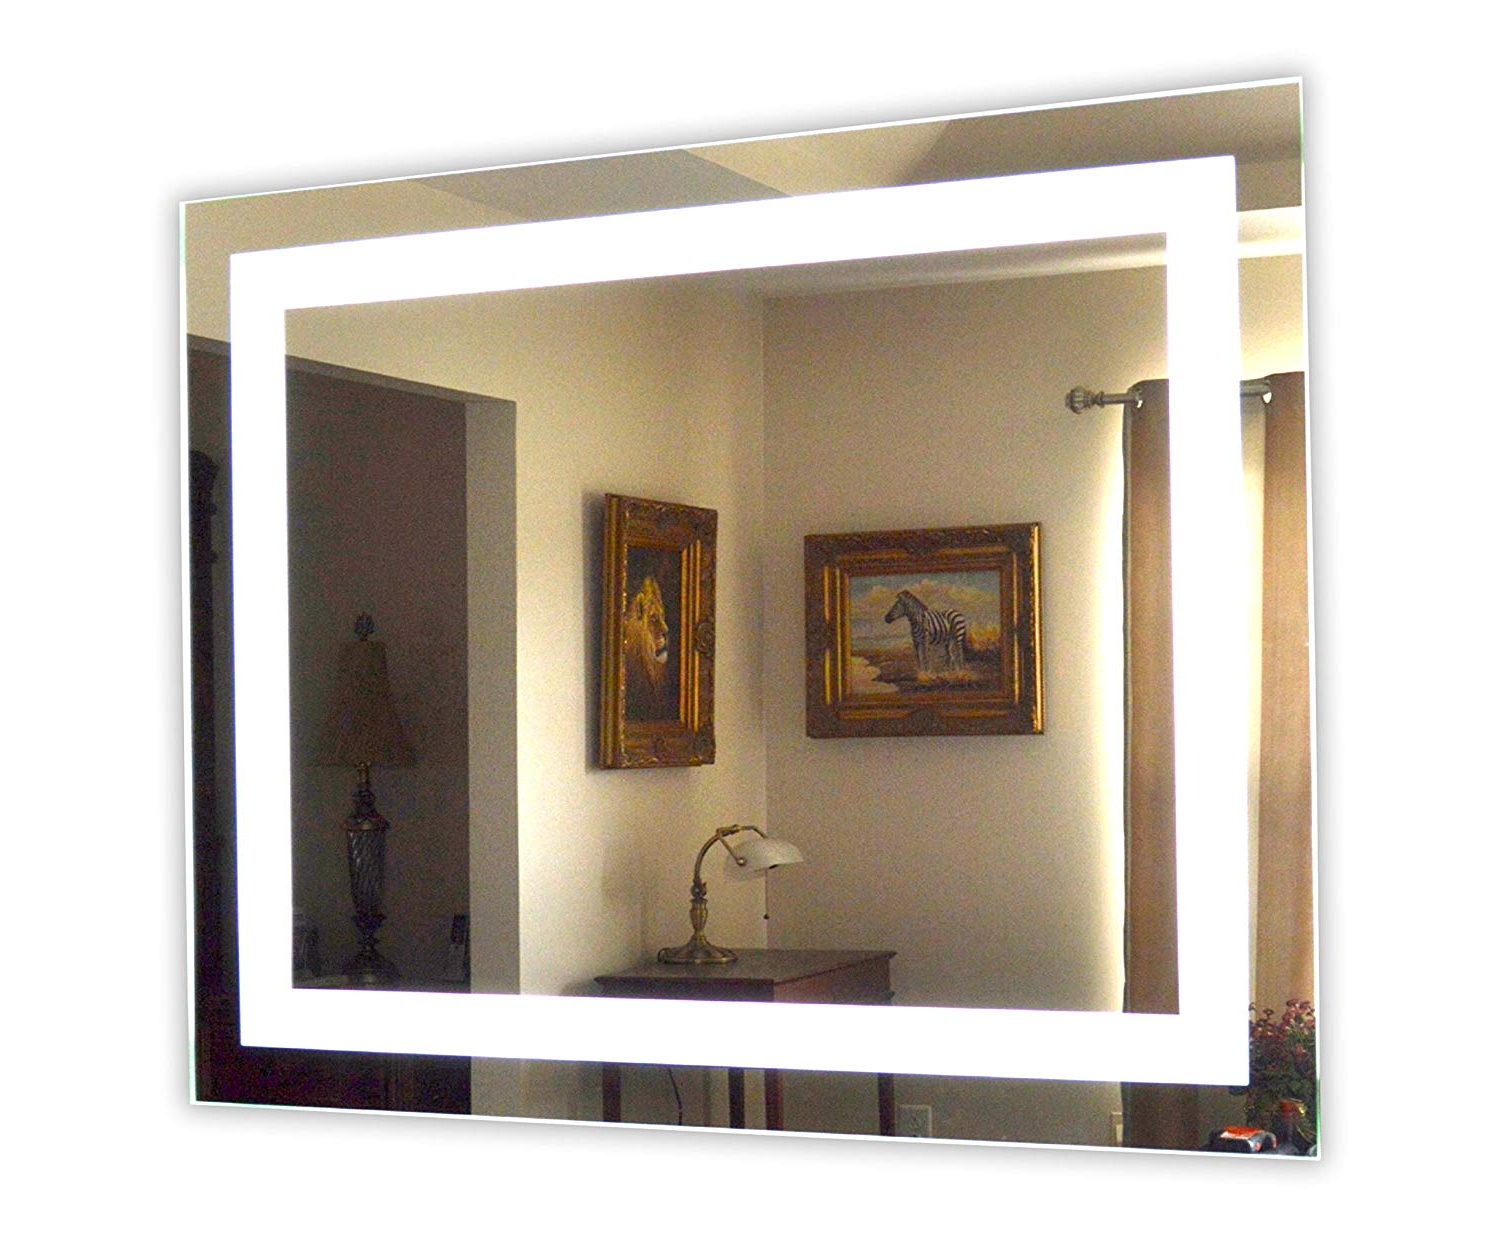 """Vanity Mirrors For Well Known Amazon: Led Front Lighted Bathroom Vanity Mirror: 40"""" Wide X (View 4 of 20)"""